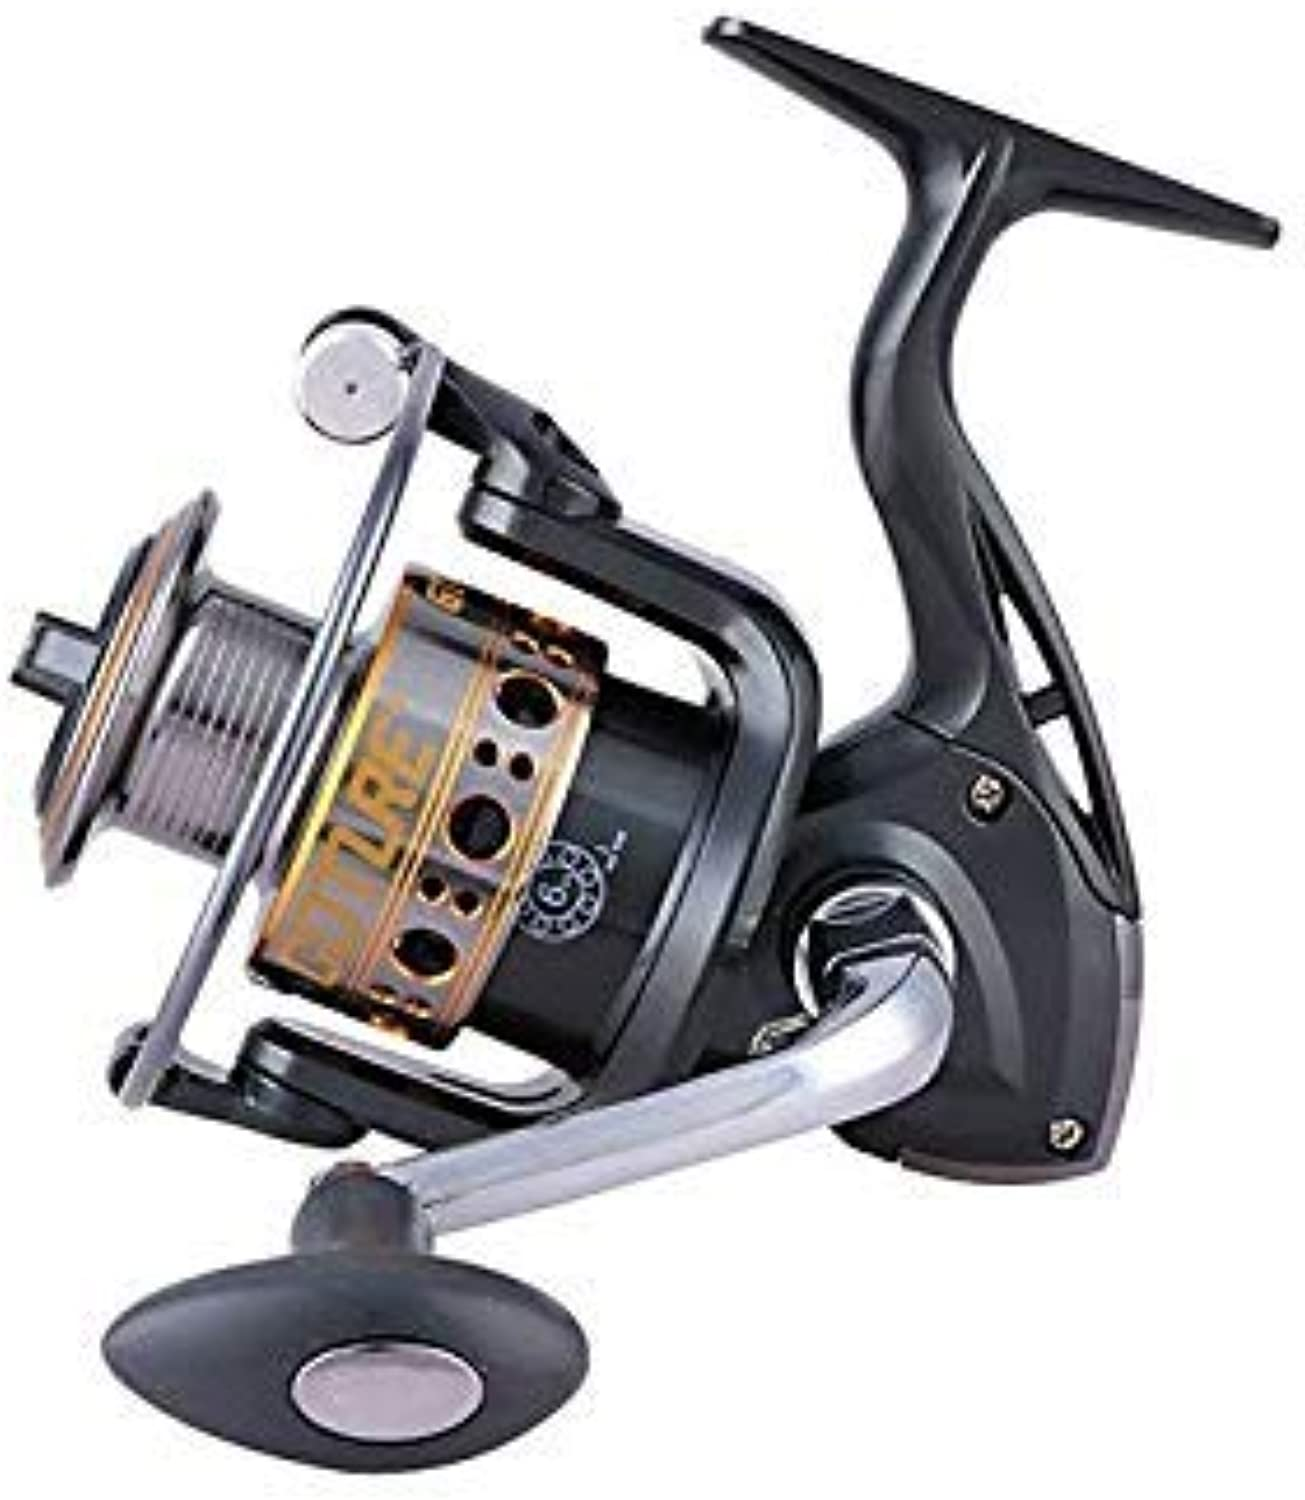 GEOPONICS Goture GTV GTS Crap Fishing Reel 6+1BB Reel for Fishing 500 1000 2000 3000 4000 5000 6000 7000 Left Right Spinning Wheel Peche color GTV Spool Capacity 1000 Series